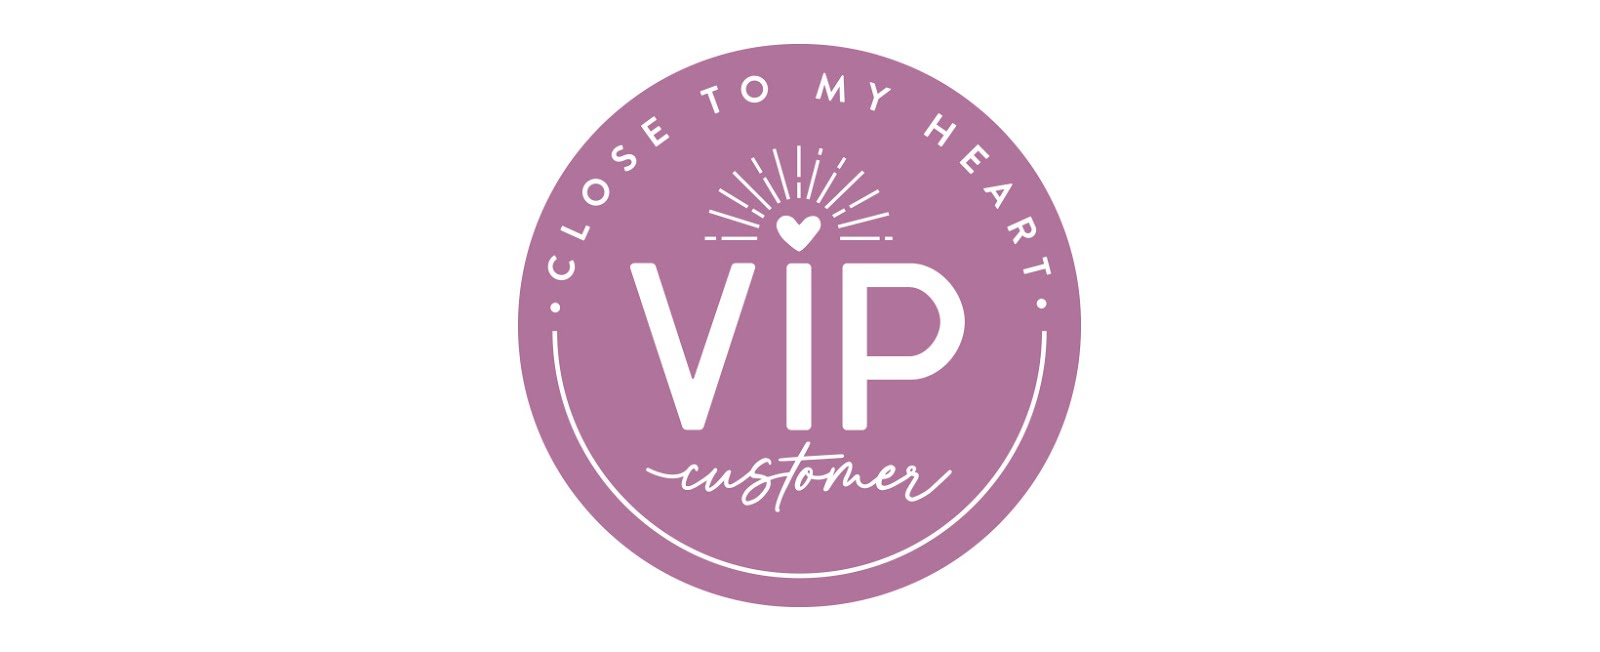 Sign up to be a VIP customer